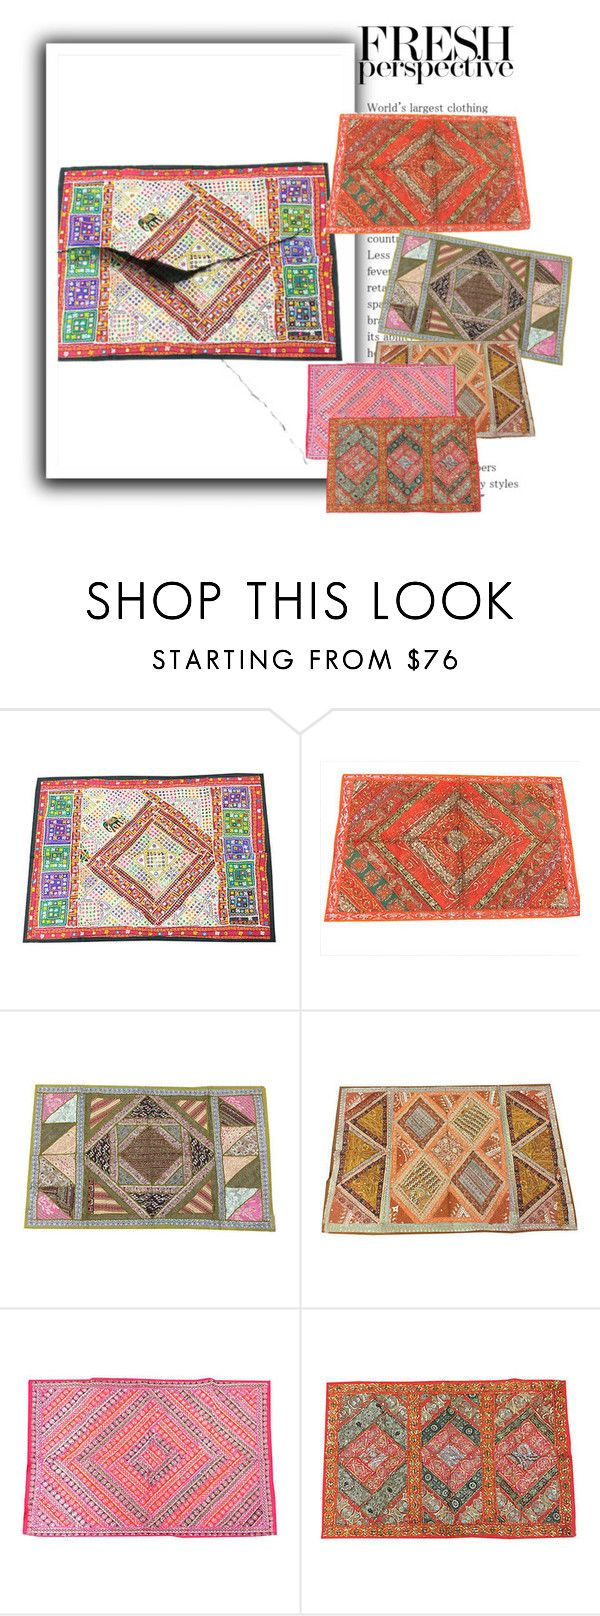 INDIAN ETHNIC PATCHWORK TAPESTRY by baydeals on Polyvore featuring interior, interiors, interior design, home, home decor, interior decorating and WALL  http://stores.ebay.com/mogulgallery/WALL-HANGINGS-TAPESTRIES-/_i.html?_fsub=353416519&_sid=3781319&_trksid=p4634.c0.m322